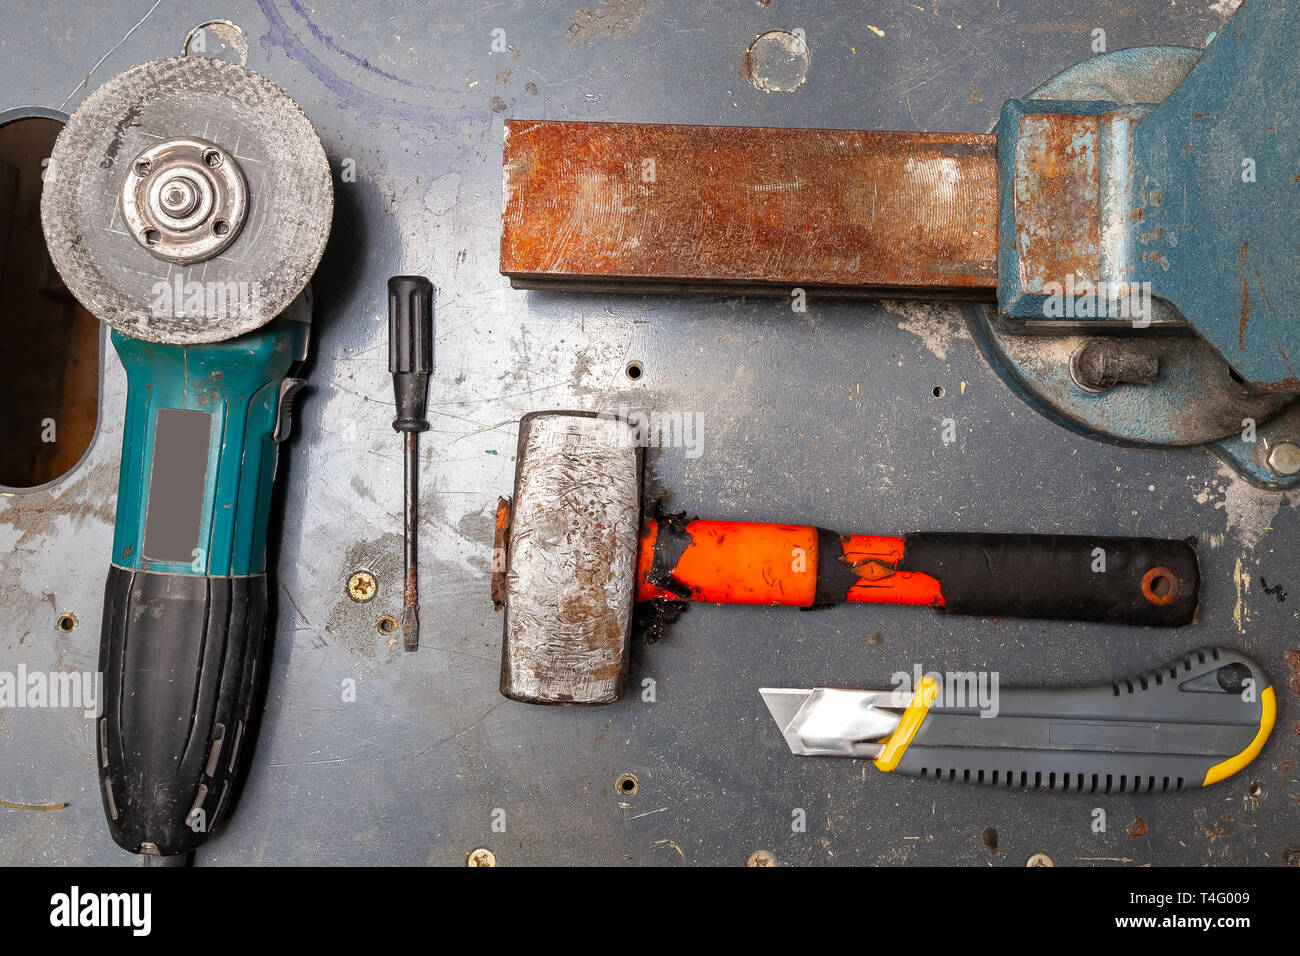 Flat lay view of a workbench with a set of tools consisting of a large heavy vise, angle grinder, screwdriver, cutter, sledgehammer, and a spare cutti - Stock Image